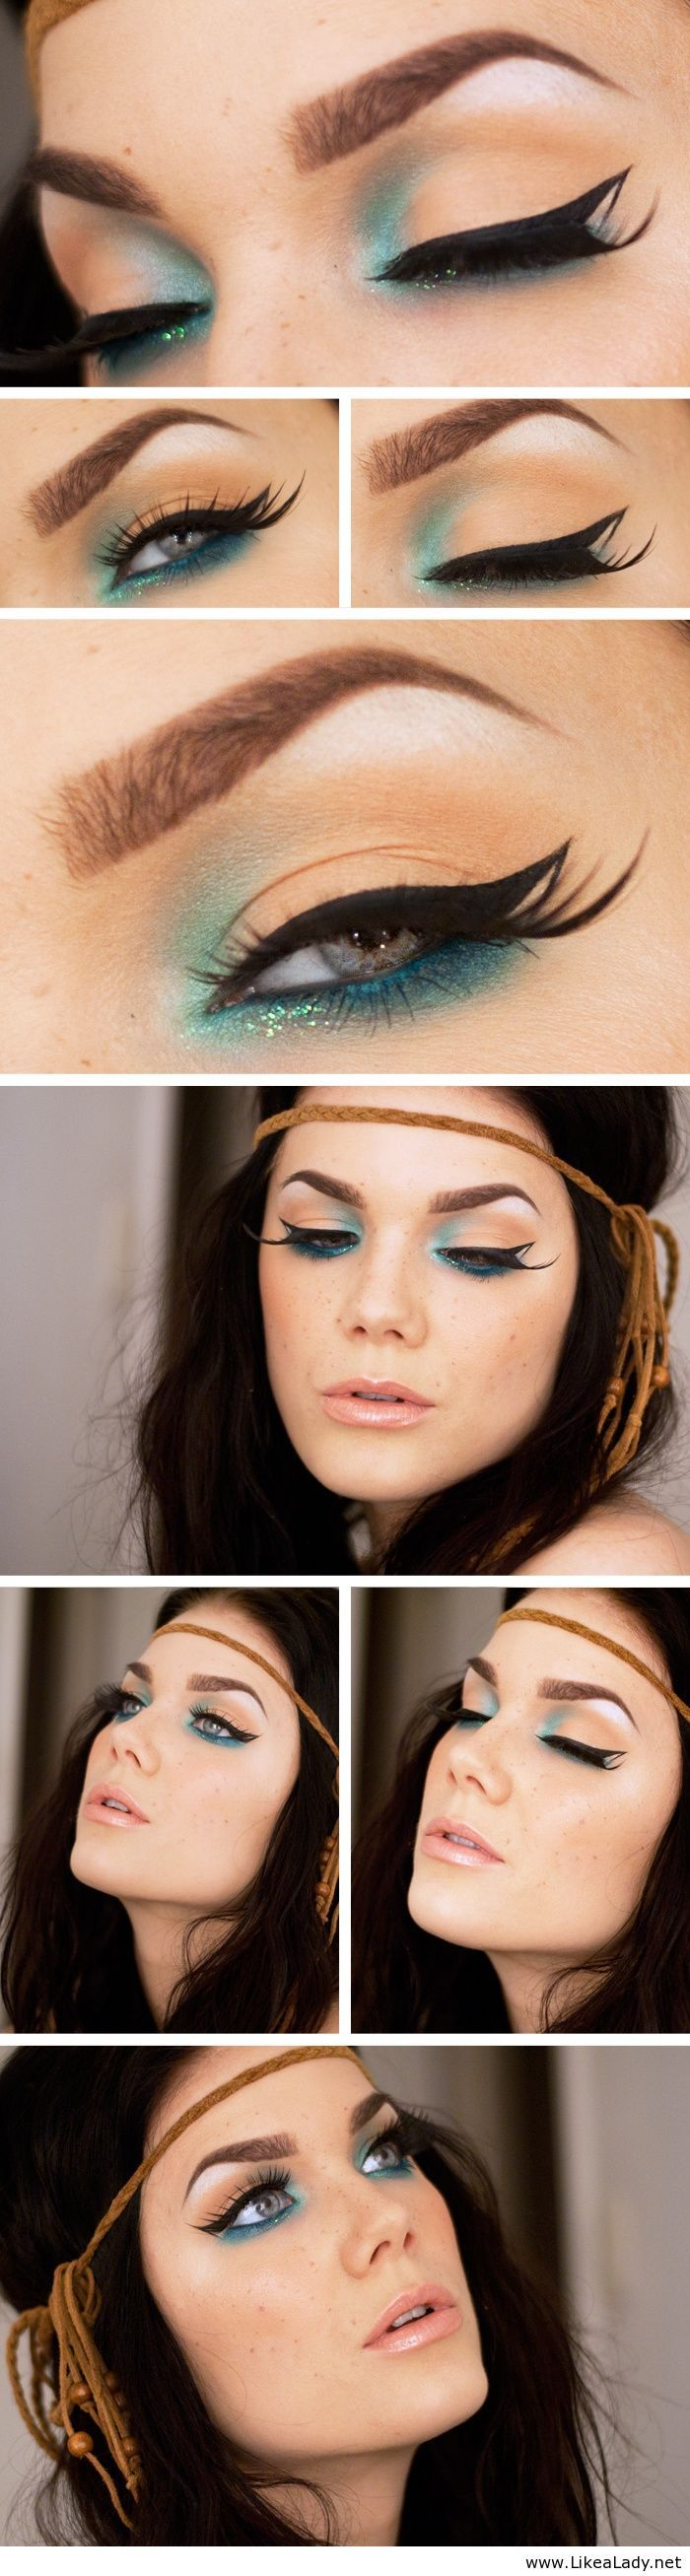 Blue and nude makeup